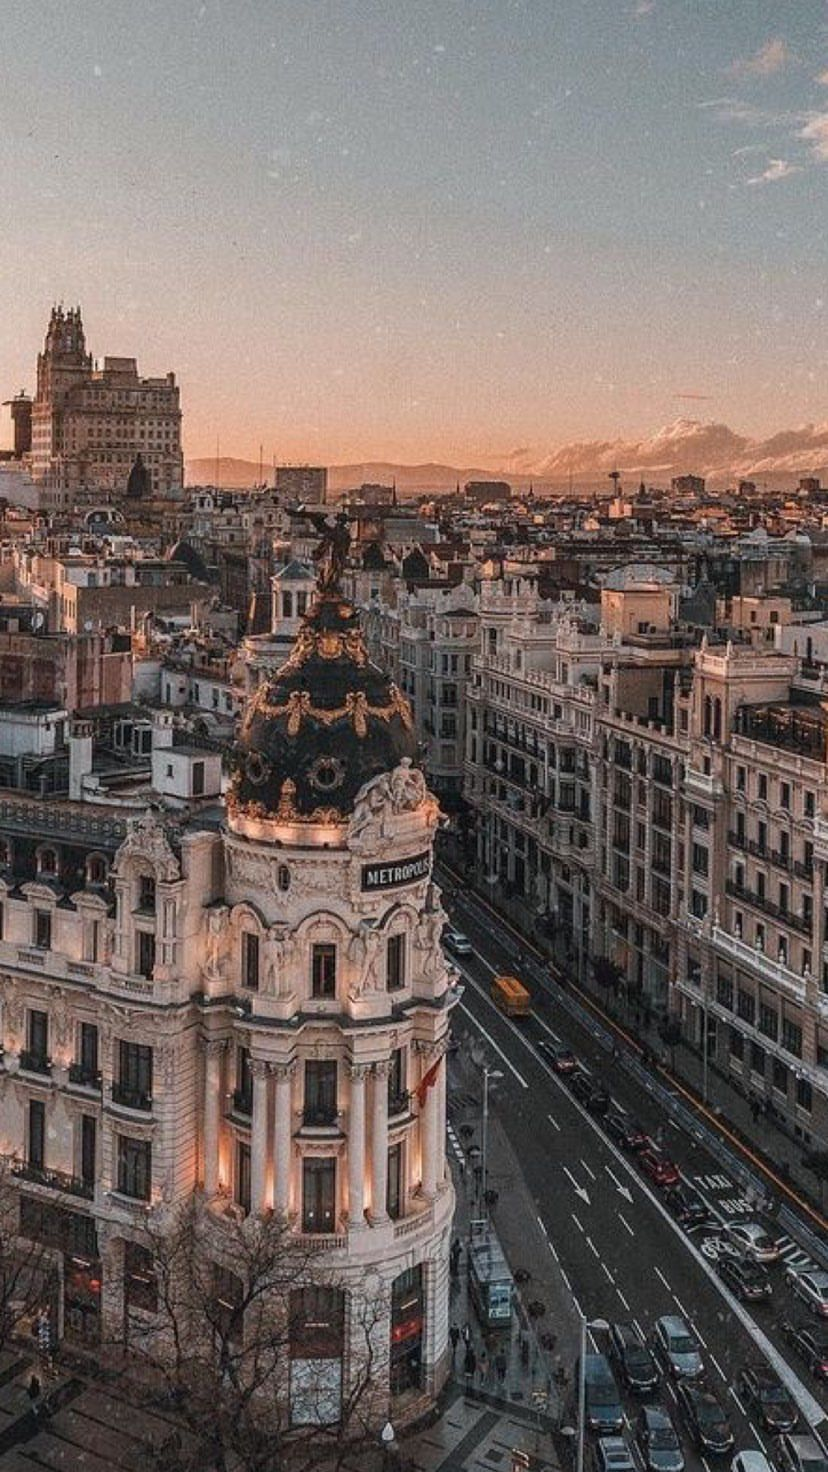 Pin By Ashley On Wallpapers In 2020 Travel Destinations Photography Madrid Spain Travel City Aesthetic